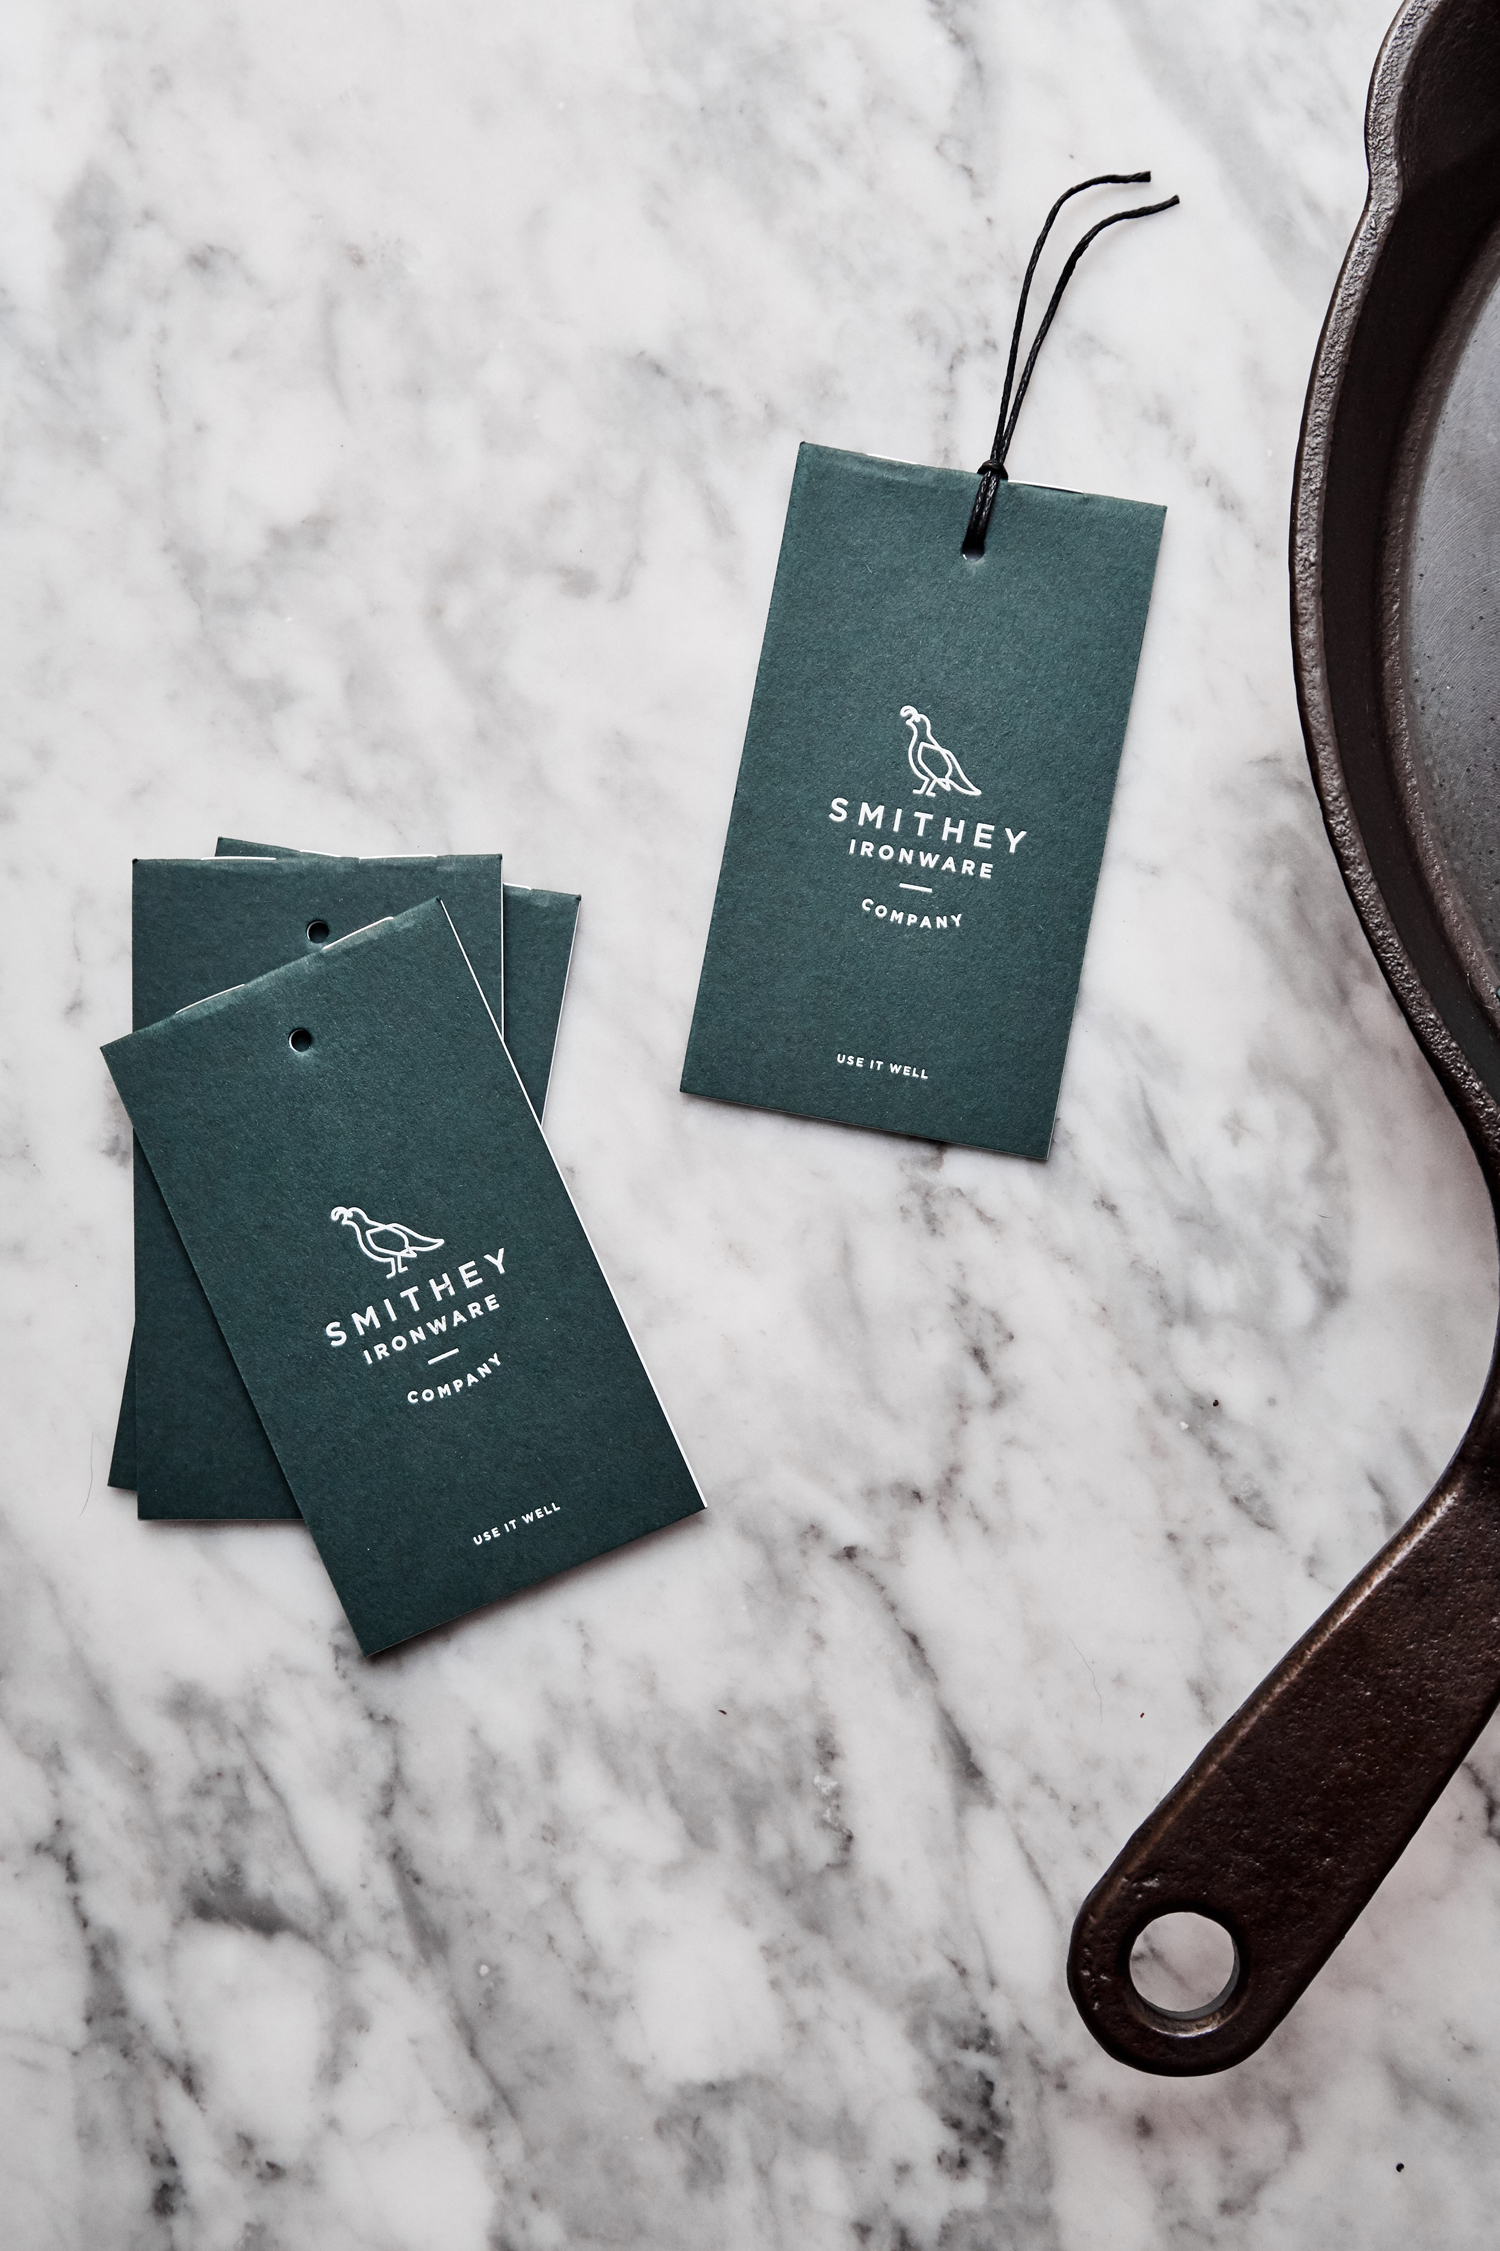 Brand identity and tags with green paper and white ink detail for Smithey Ironware Company by Charleston based Stitch, United States